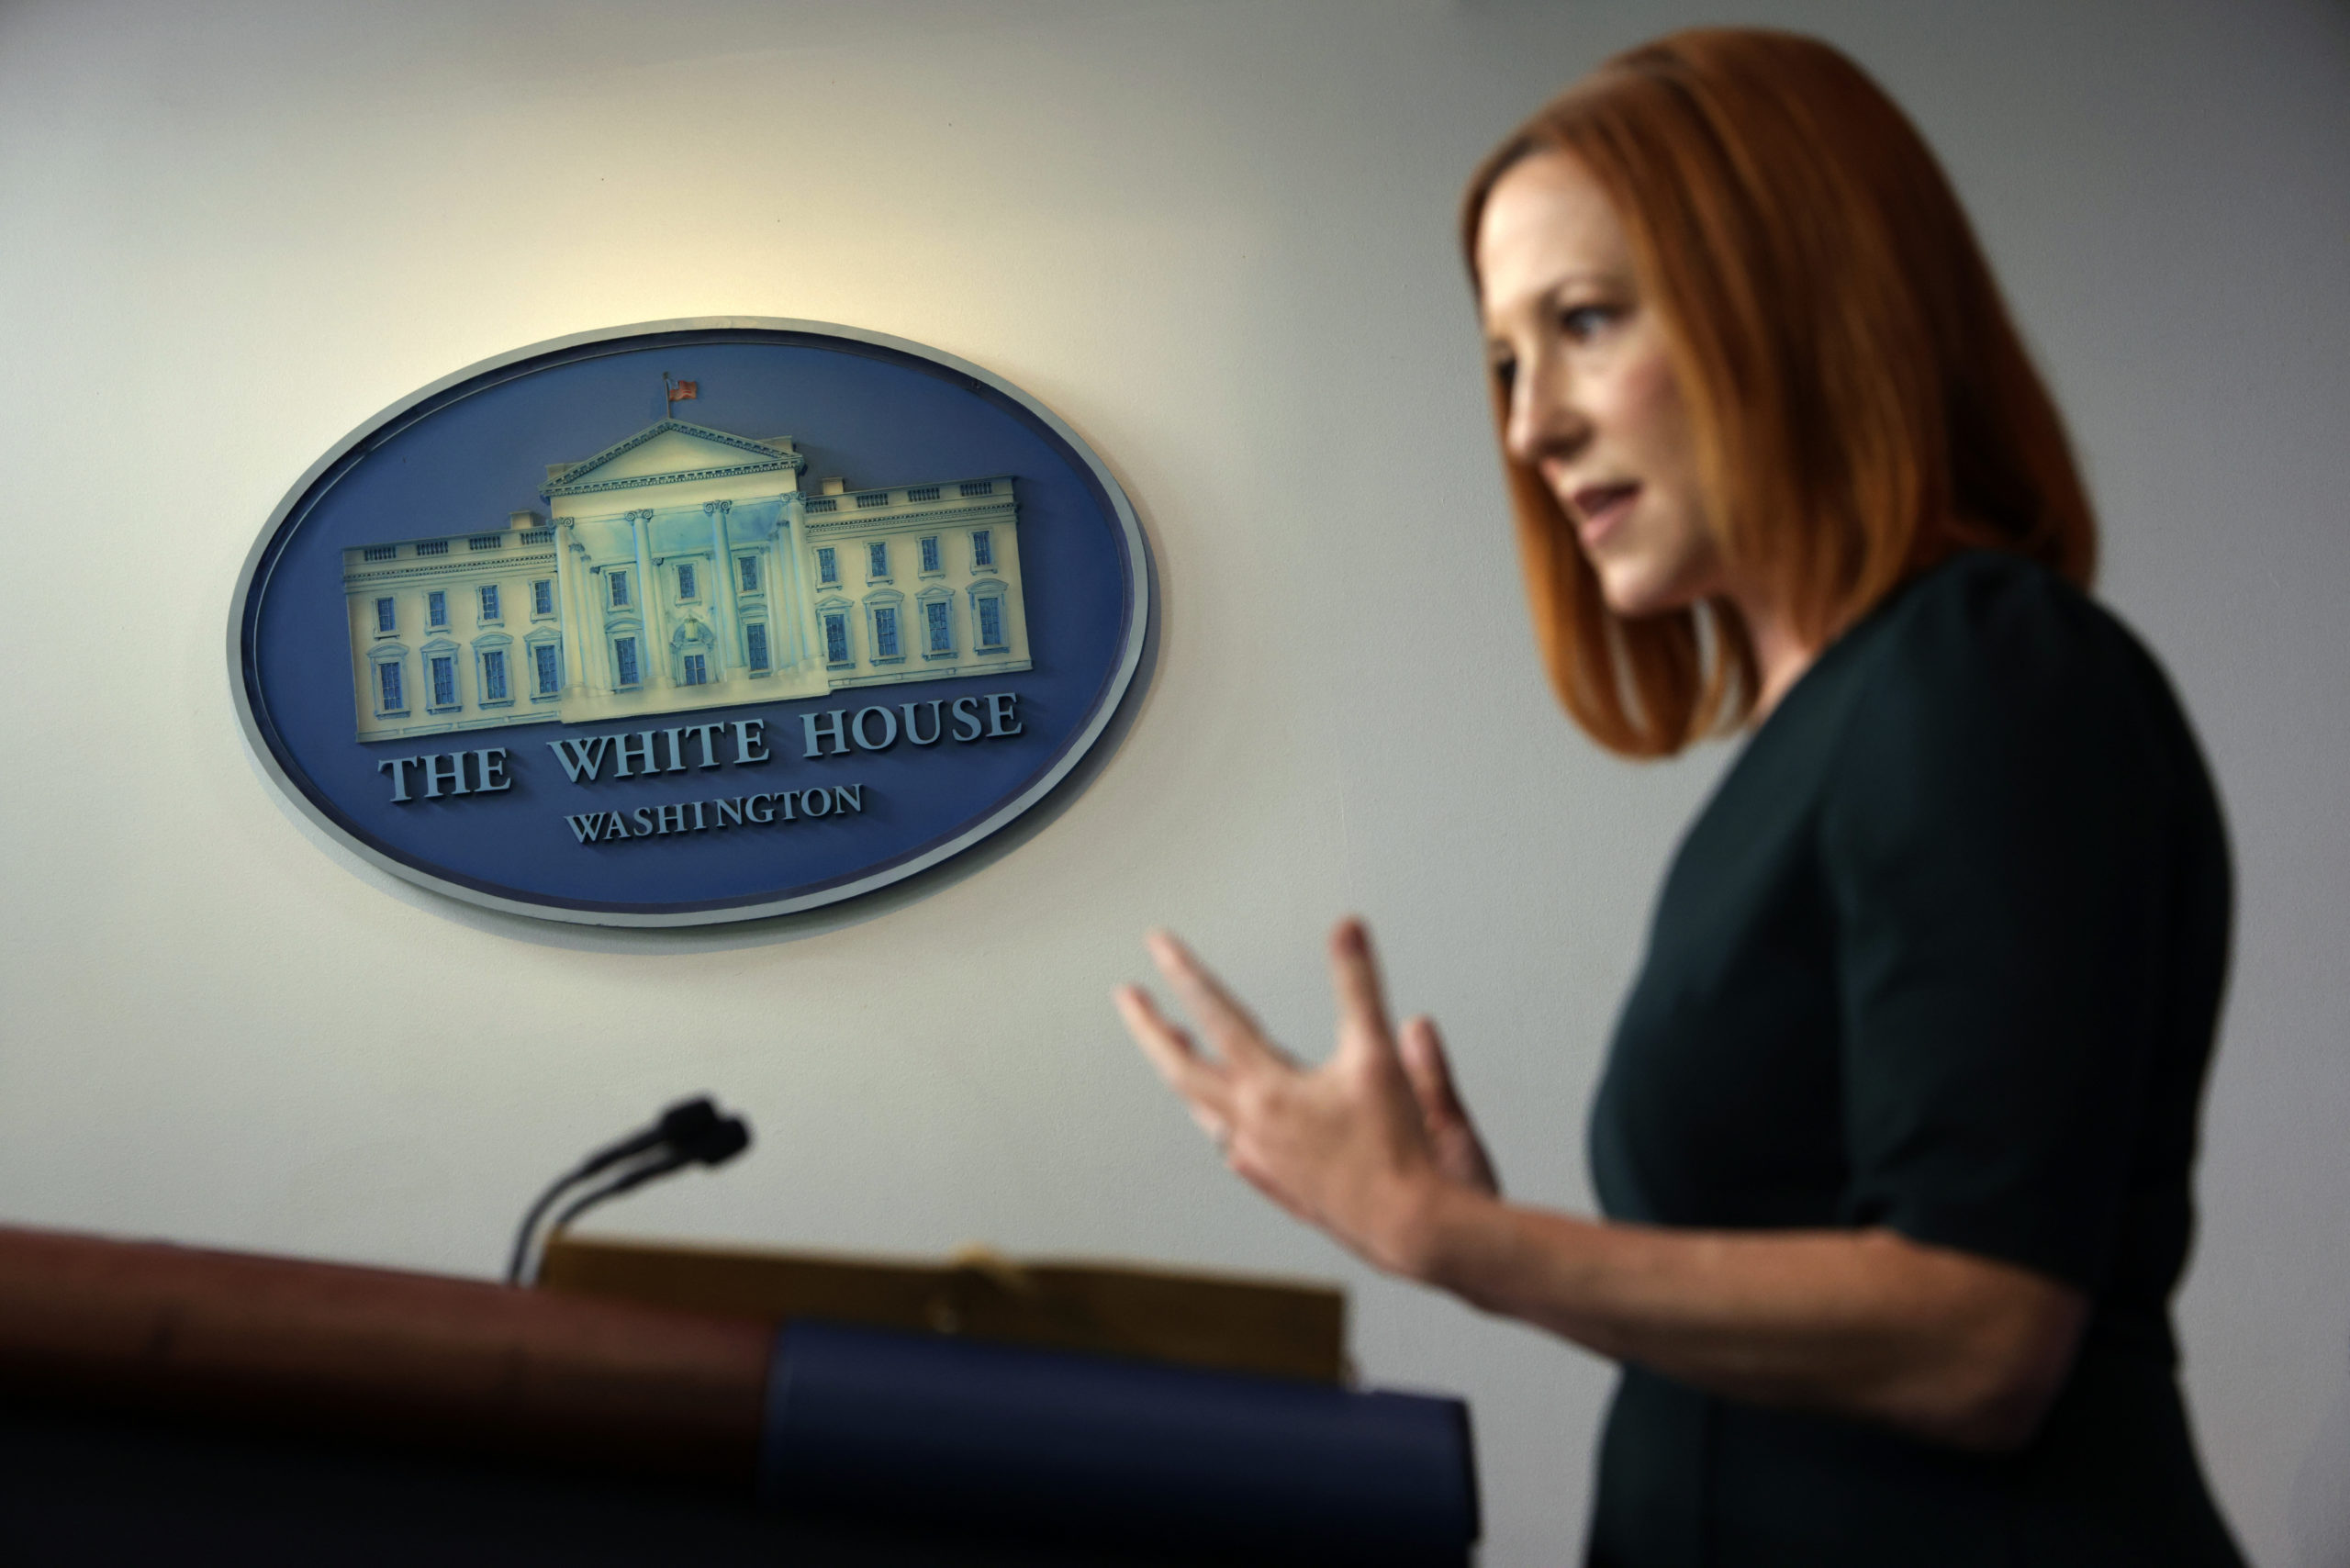 WASHINGTON, DC - MAY 04: White House Press Secretary Jen Psaki speaks during a daily briefing at the James Brady Press Briefing Room of the White House May 4, 2021 in Washington, DC. U.S. President Joe Biden will deliver remarks on the COVID-19 response and the vaccination program later today. (Photo by Alex Wong/Getty Images)